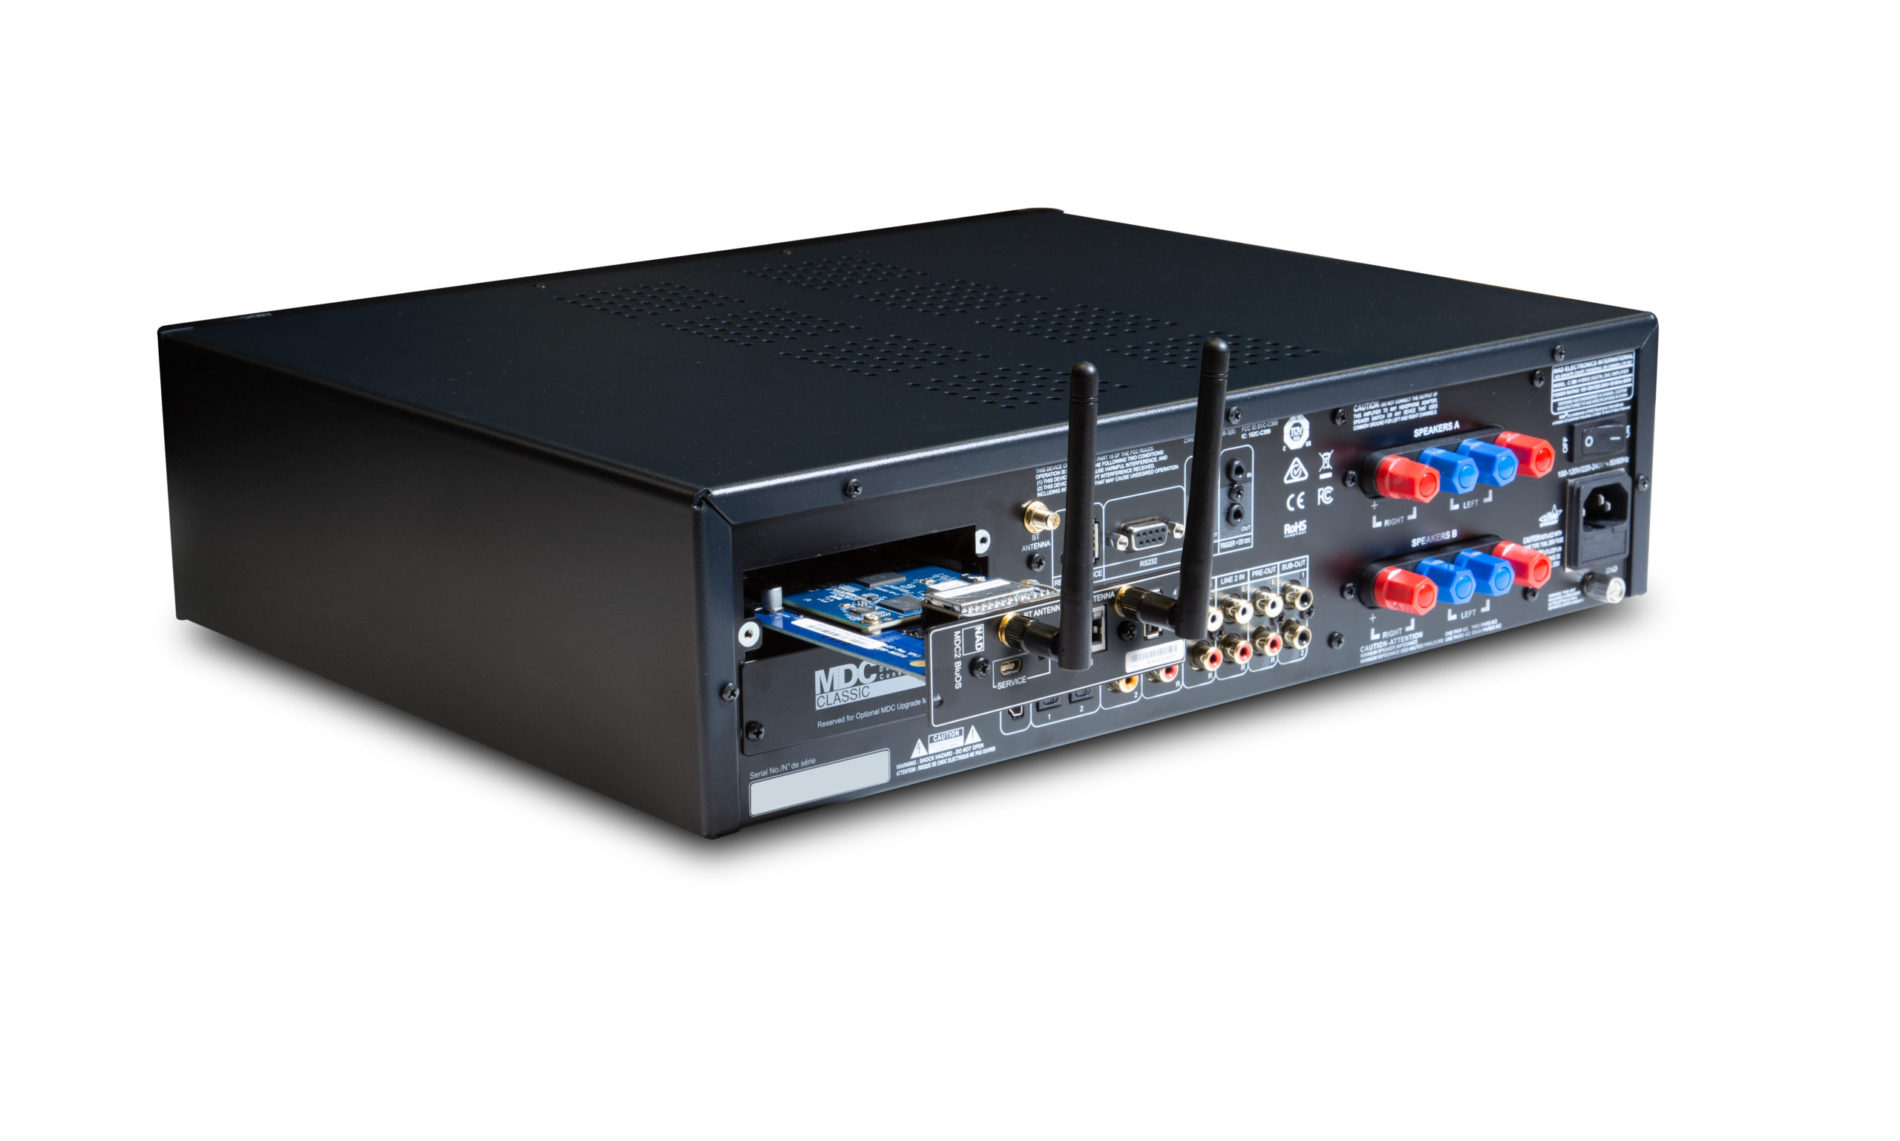 NAD C 399 with MDC card and installed antennas